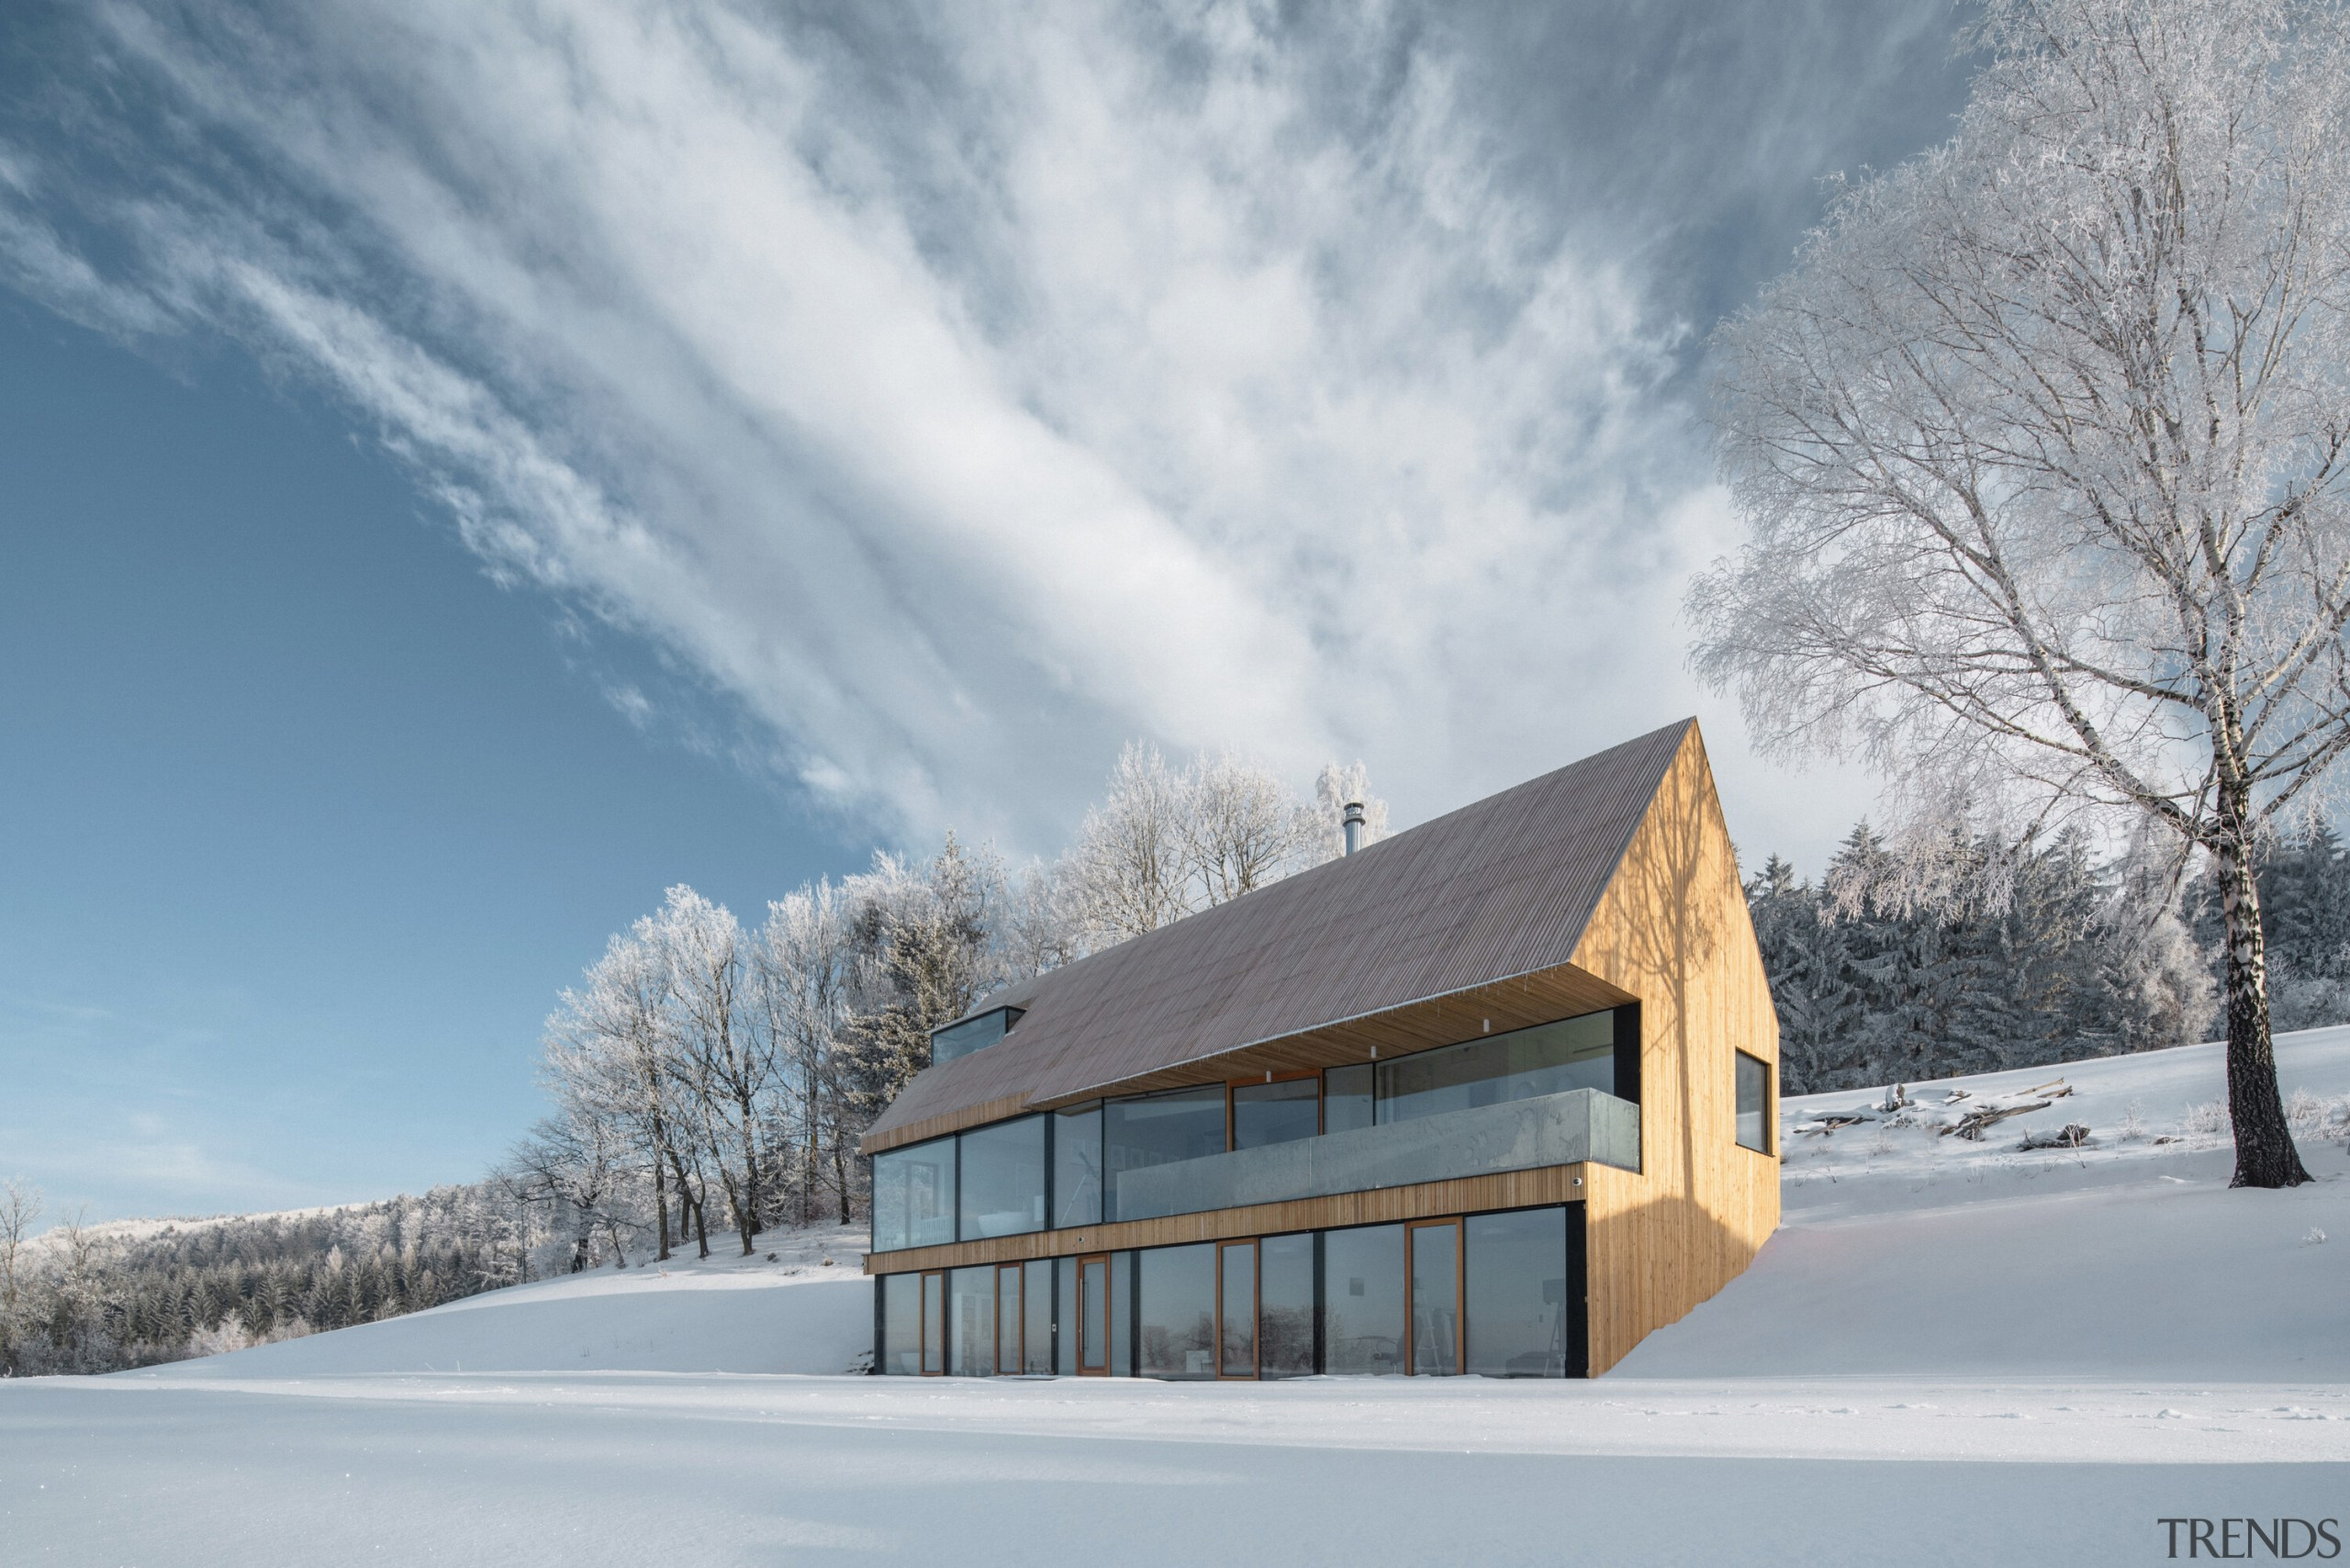 The house blends in with its backdrop -